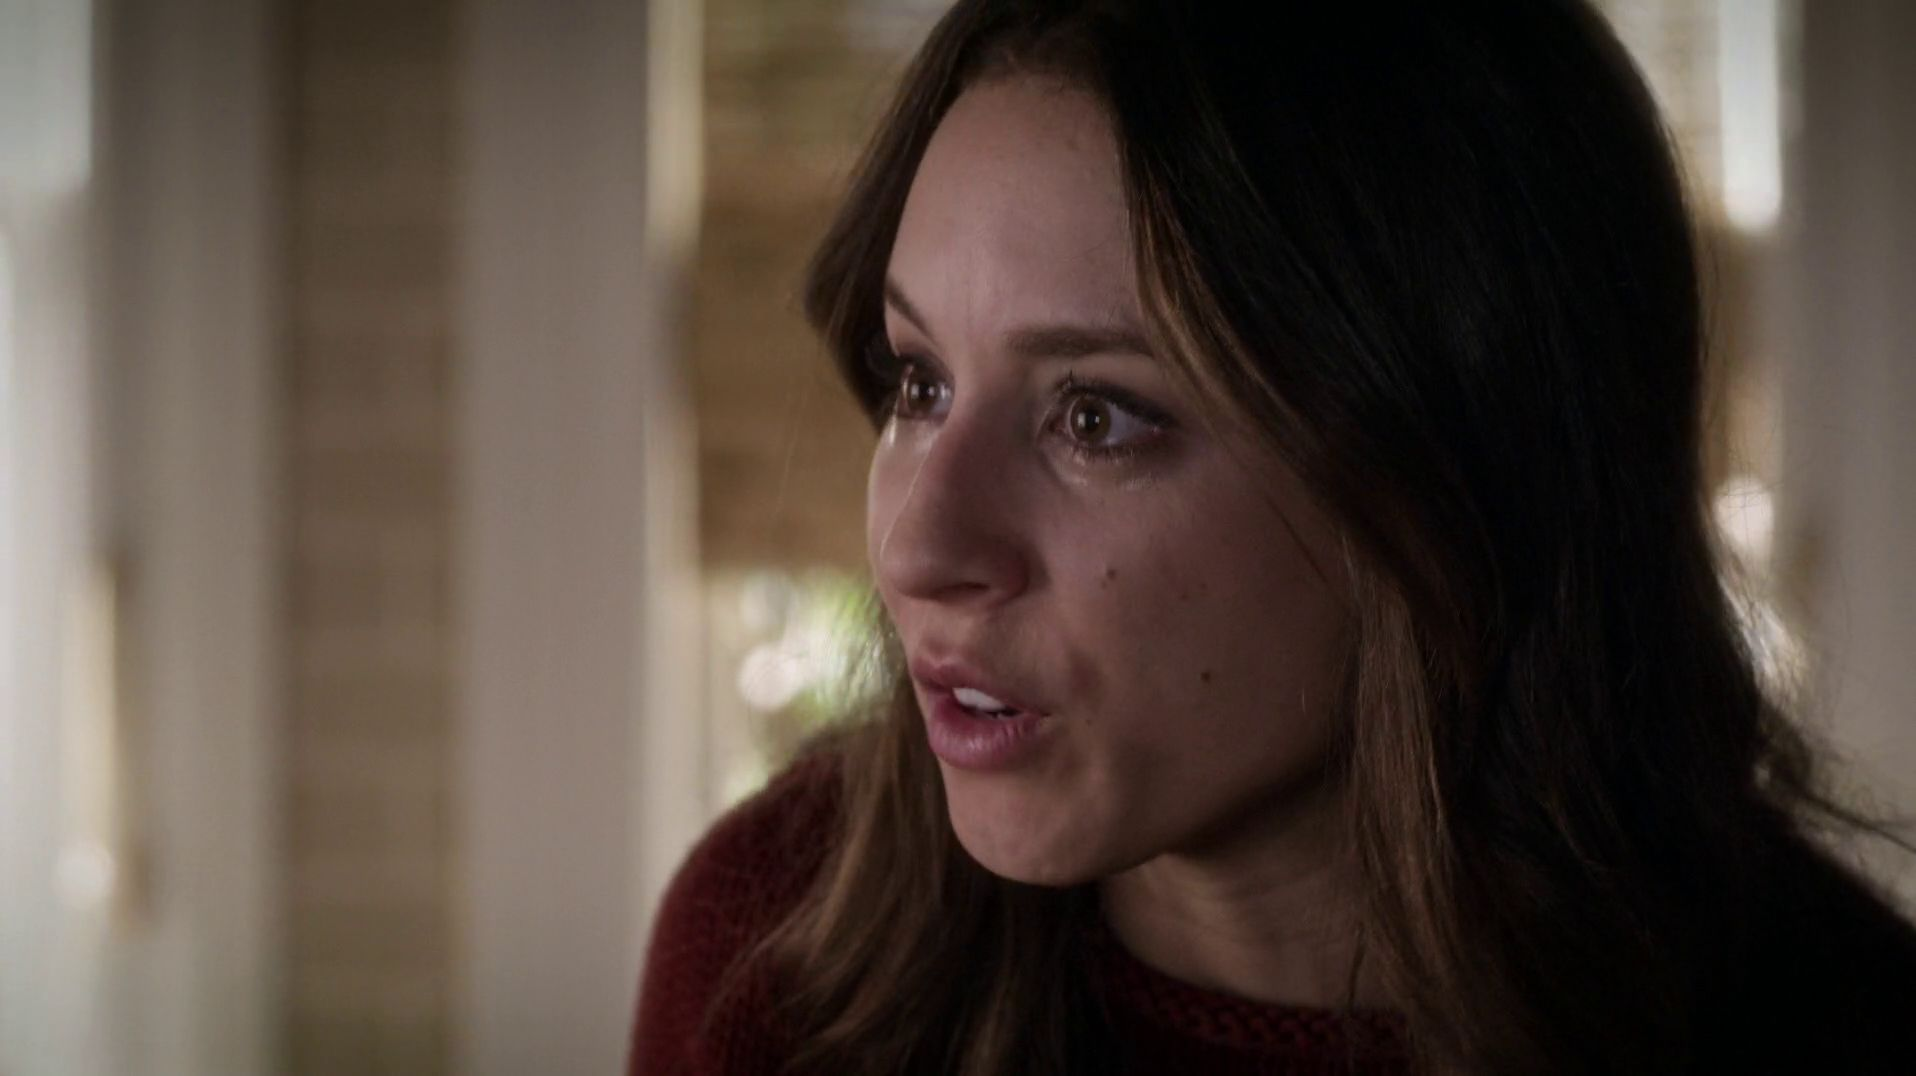 Related spencer hastings living room hanna marin kitchen - In The Hastings Residence Veronica Is Telling Spencer That She S Sure That The School Board Took Her Feelings Into Consideration In The Fields Household